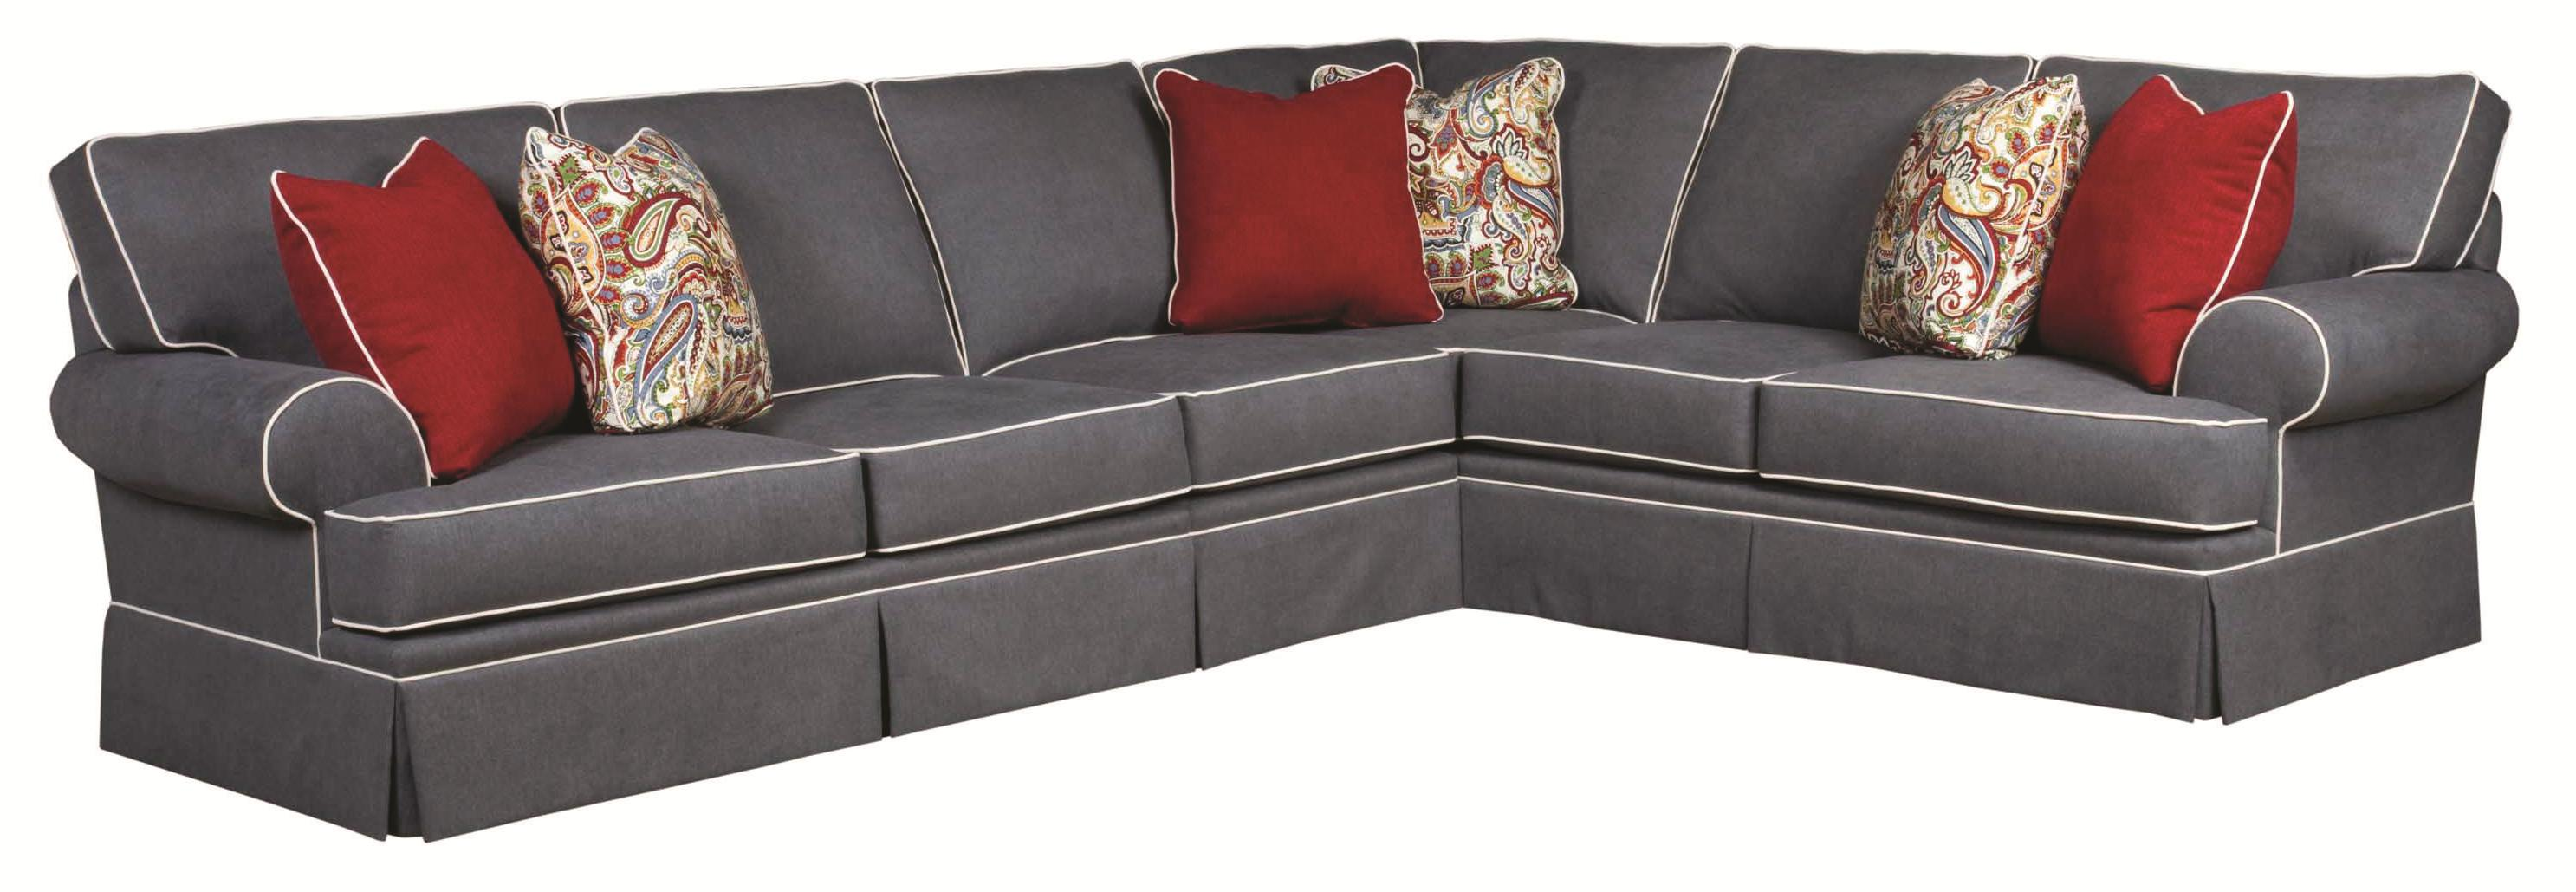 Broyhill Furniture Emily Traditional 3 Piece Sectional Sofa with Skirted base - AHFA - Sofa Sectional Dealer Locator  sc 1 st  Furniture Dealer Locator - Find your furniture : broyhill sectional sofas - Sectionals, Sofas & Couches